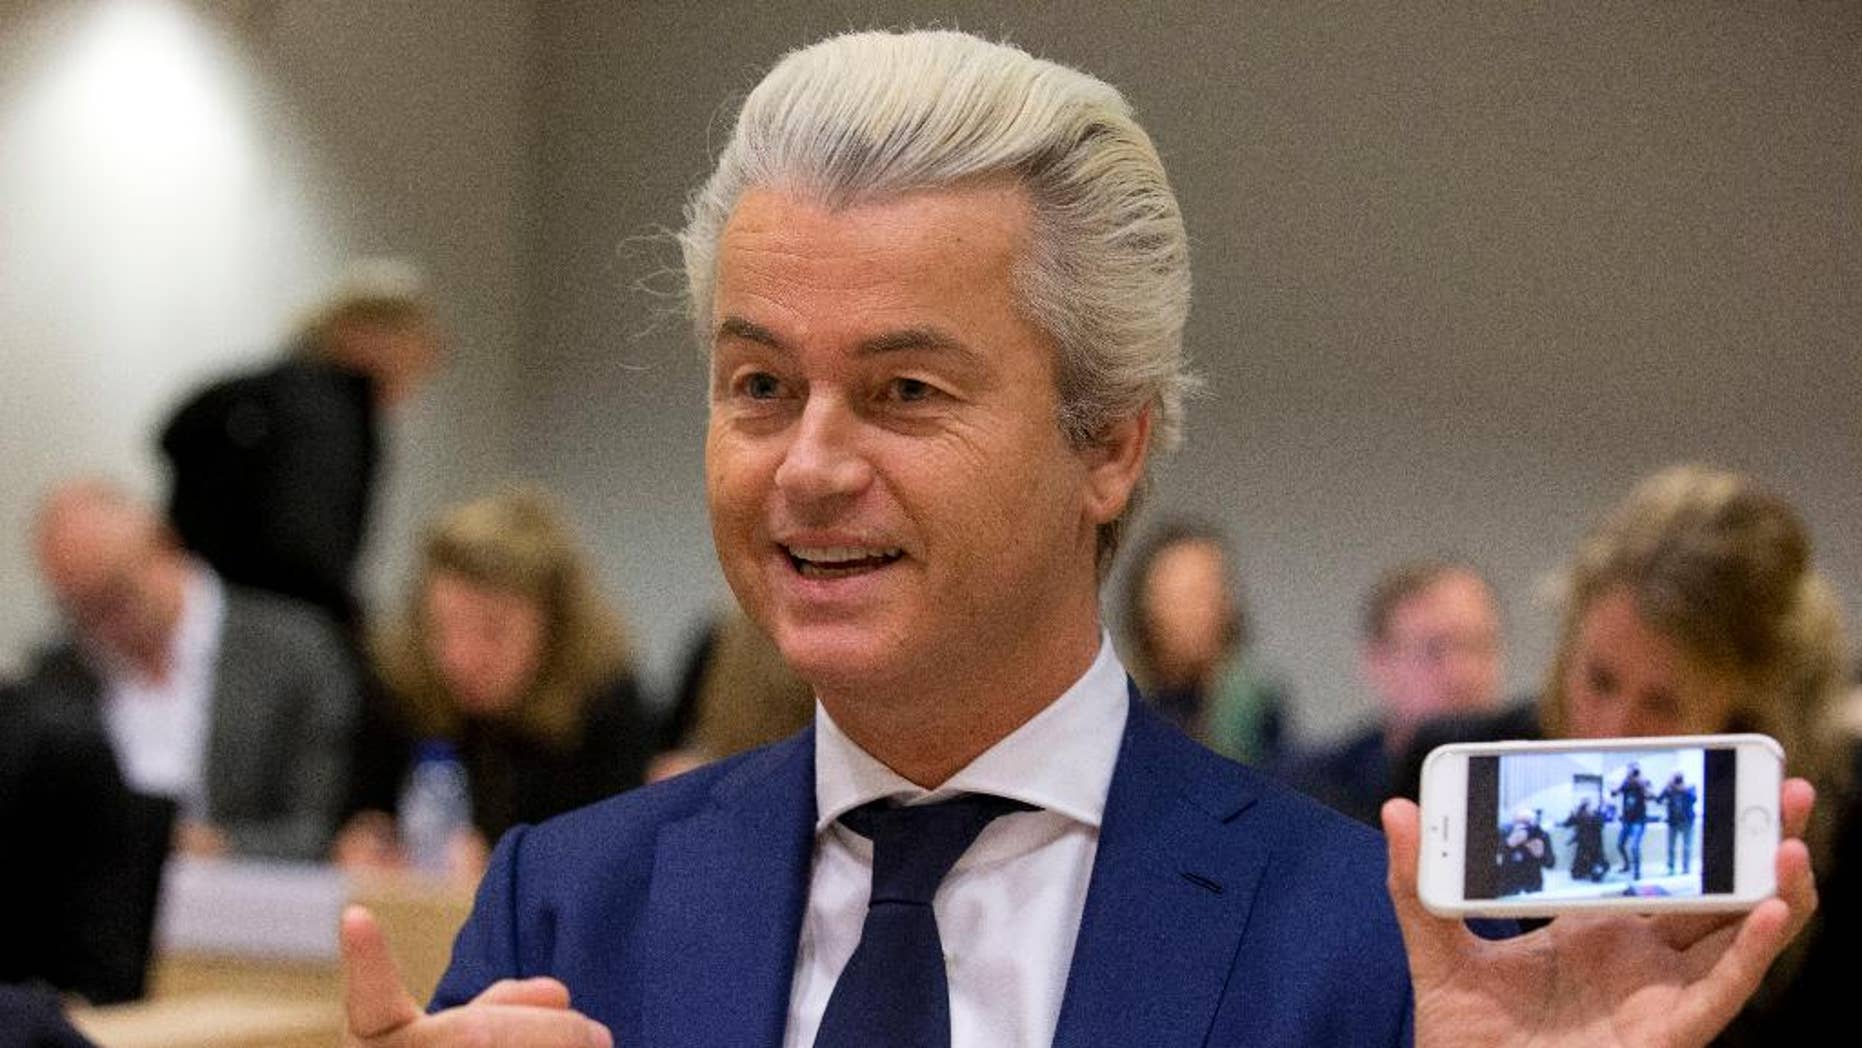 In this Friday March 18, 2016 file photo Populist anti-Islam lawmaker Geert Wilders shows a picture he took of the photographers as he appeared in court for a pretrial hearing at a high-security court on charges of inciting hatred, in Amsterdam, Netherlands. Wilders was in court Friday Sept. 23 for a pre-trial hearing in his hate speech prosecution. (AP Photo/Peter Dejong)